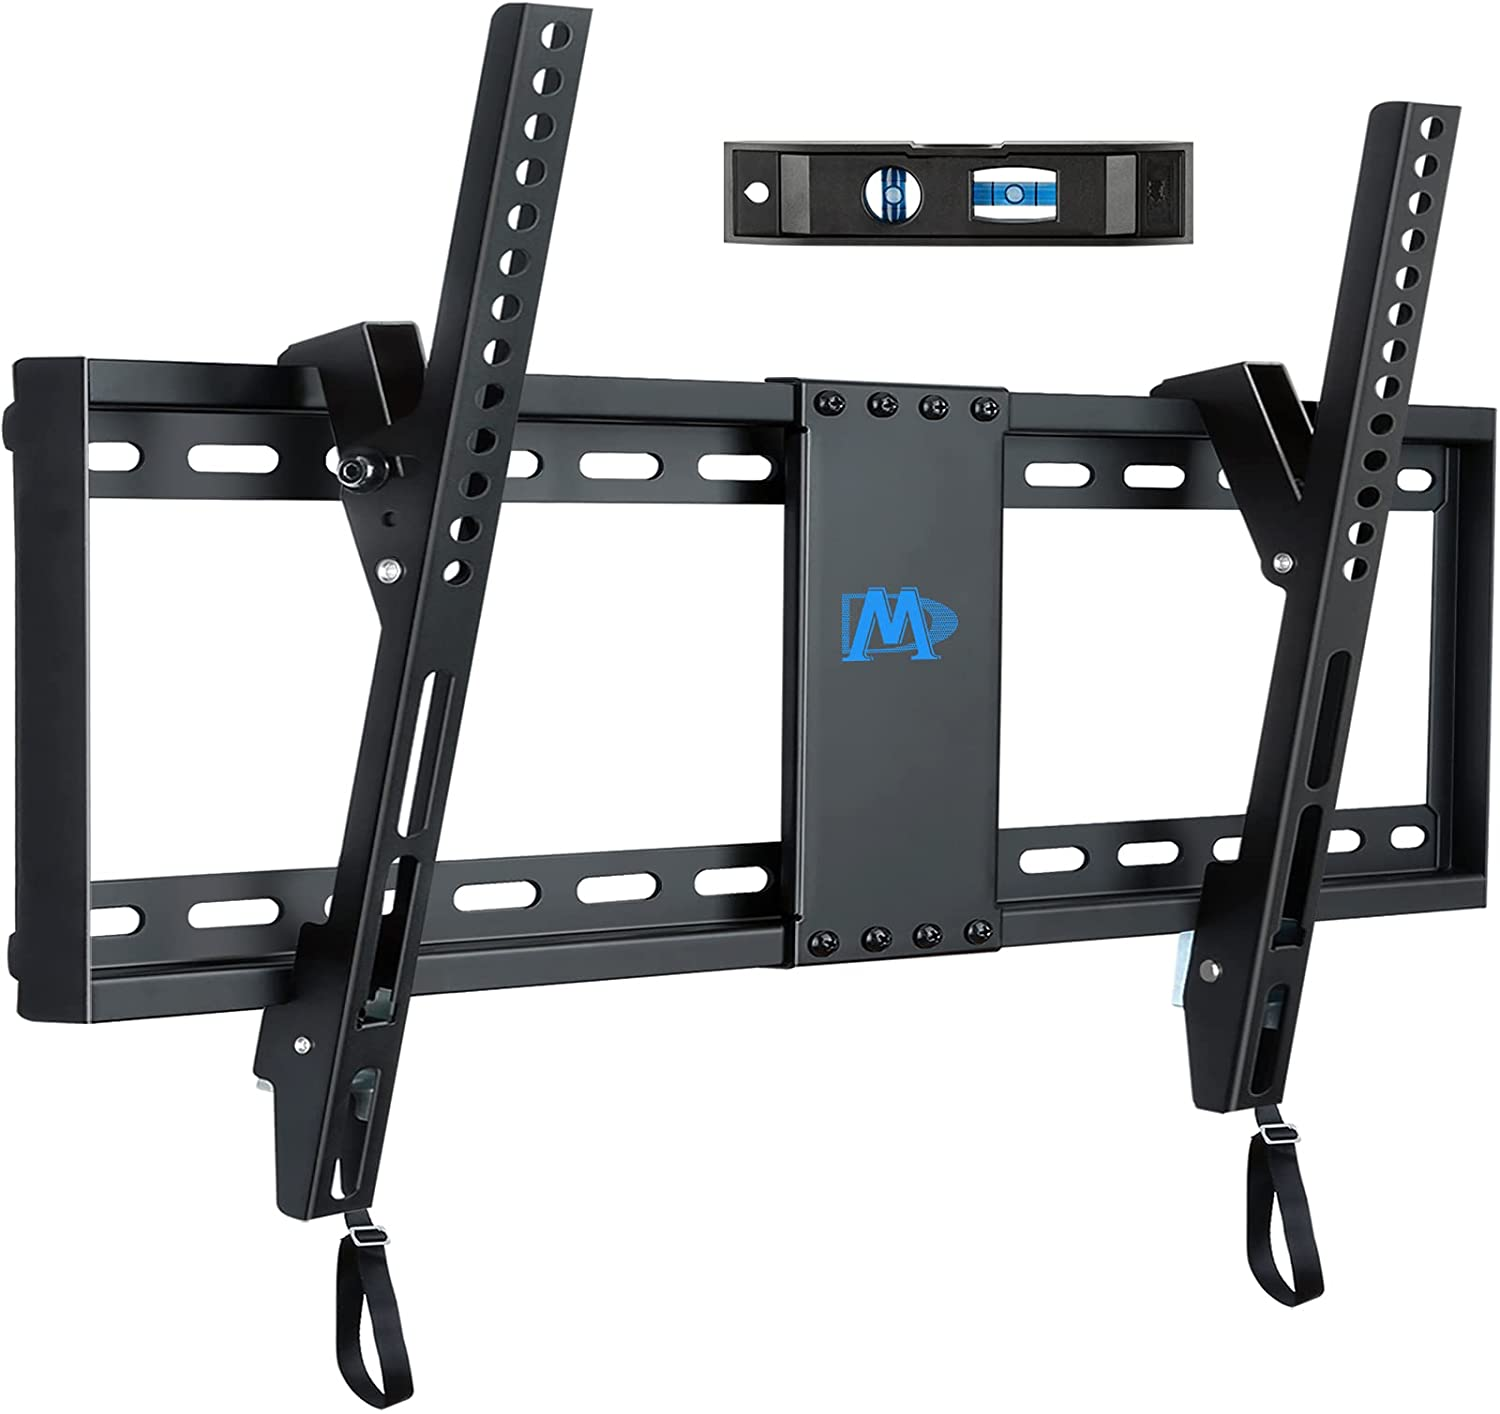 Wall Mount For Samsung 65 inch TV